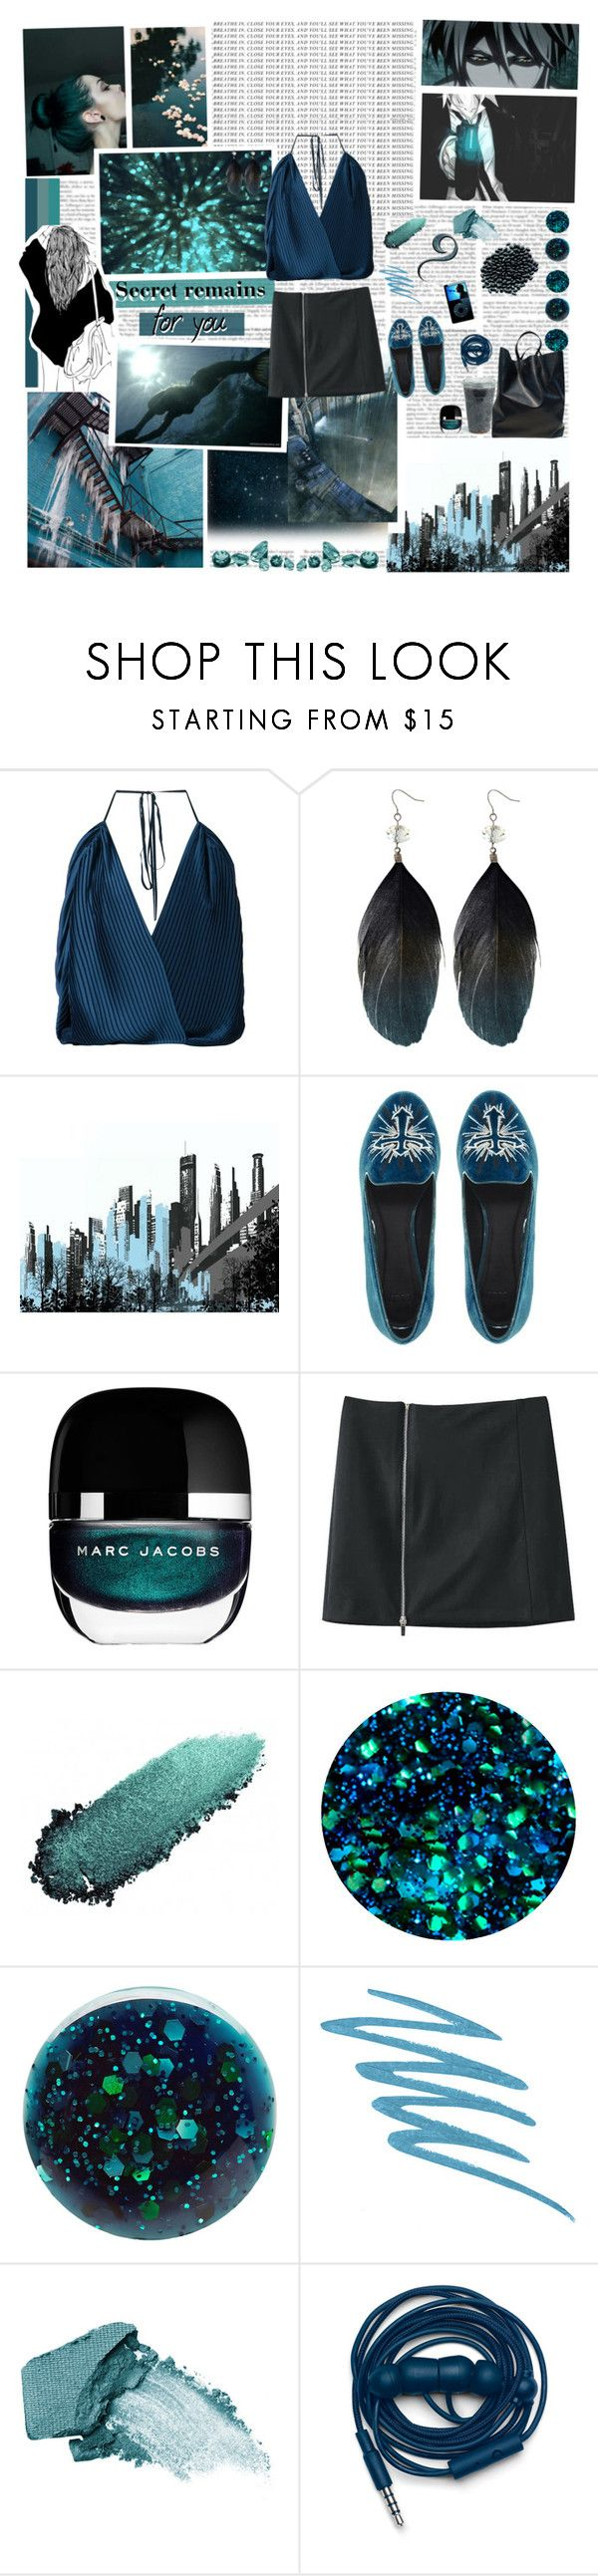 """I Made a Tip Account"" by not-the-average-girl ❤ liked on Polyvore featuring Tome, Oasis, Mr Perswall, ASOS, Marc Jacobs, H2O+, Chantecaille, Deborah Lippmann, NARS Cosmetics and Urbanears"